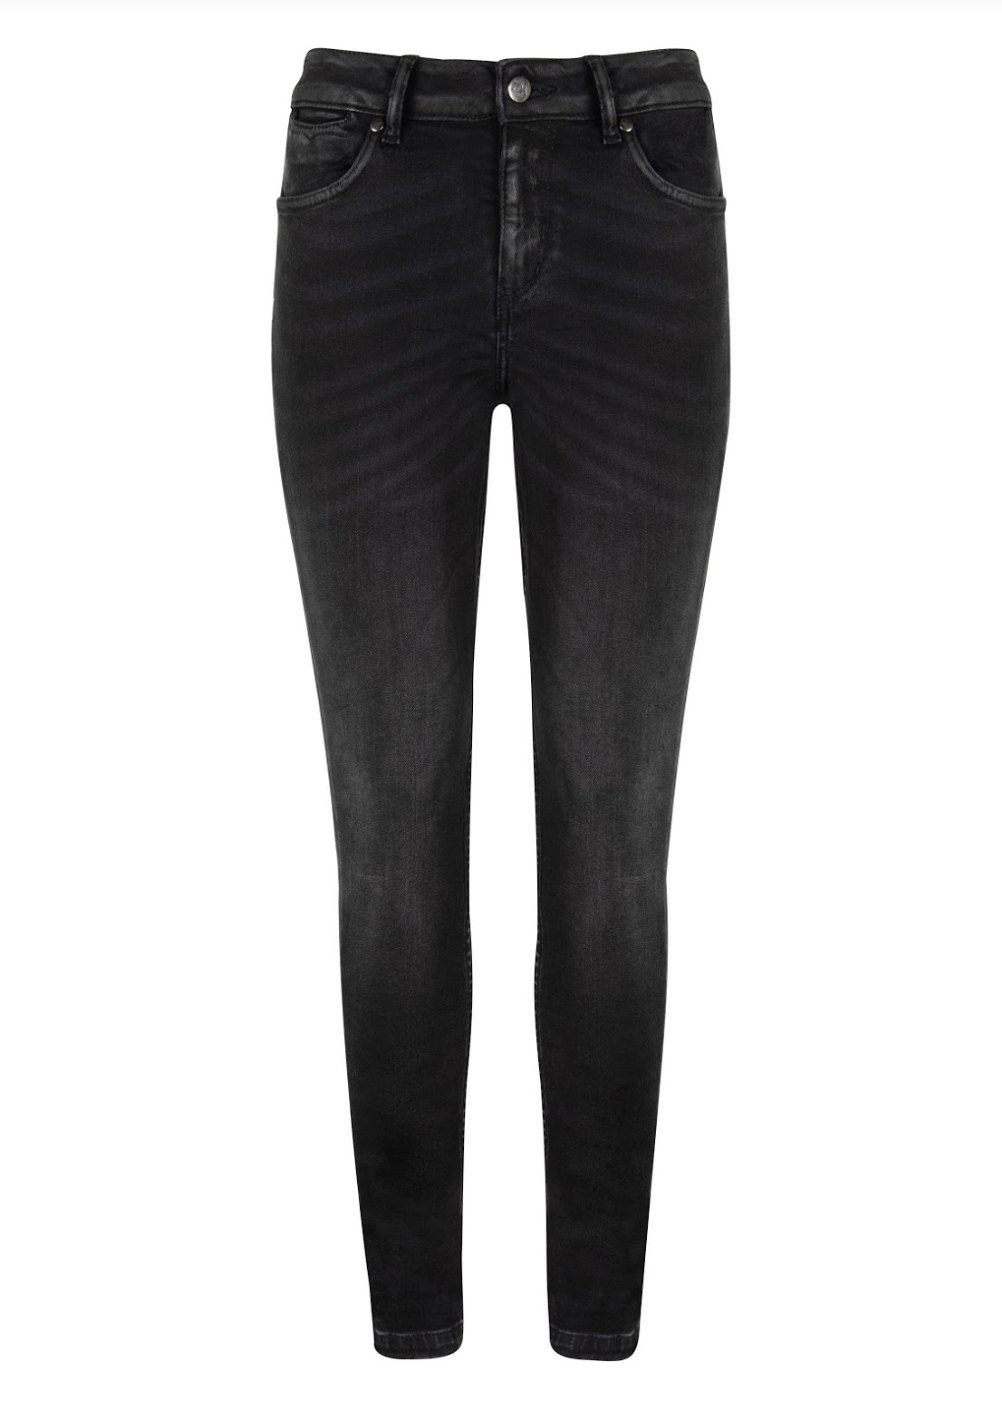 Rizzo The High Top Ankle Skinny Jeans - Dark Days